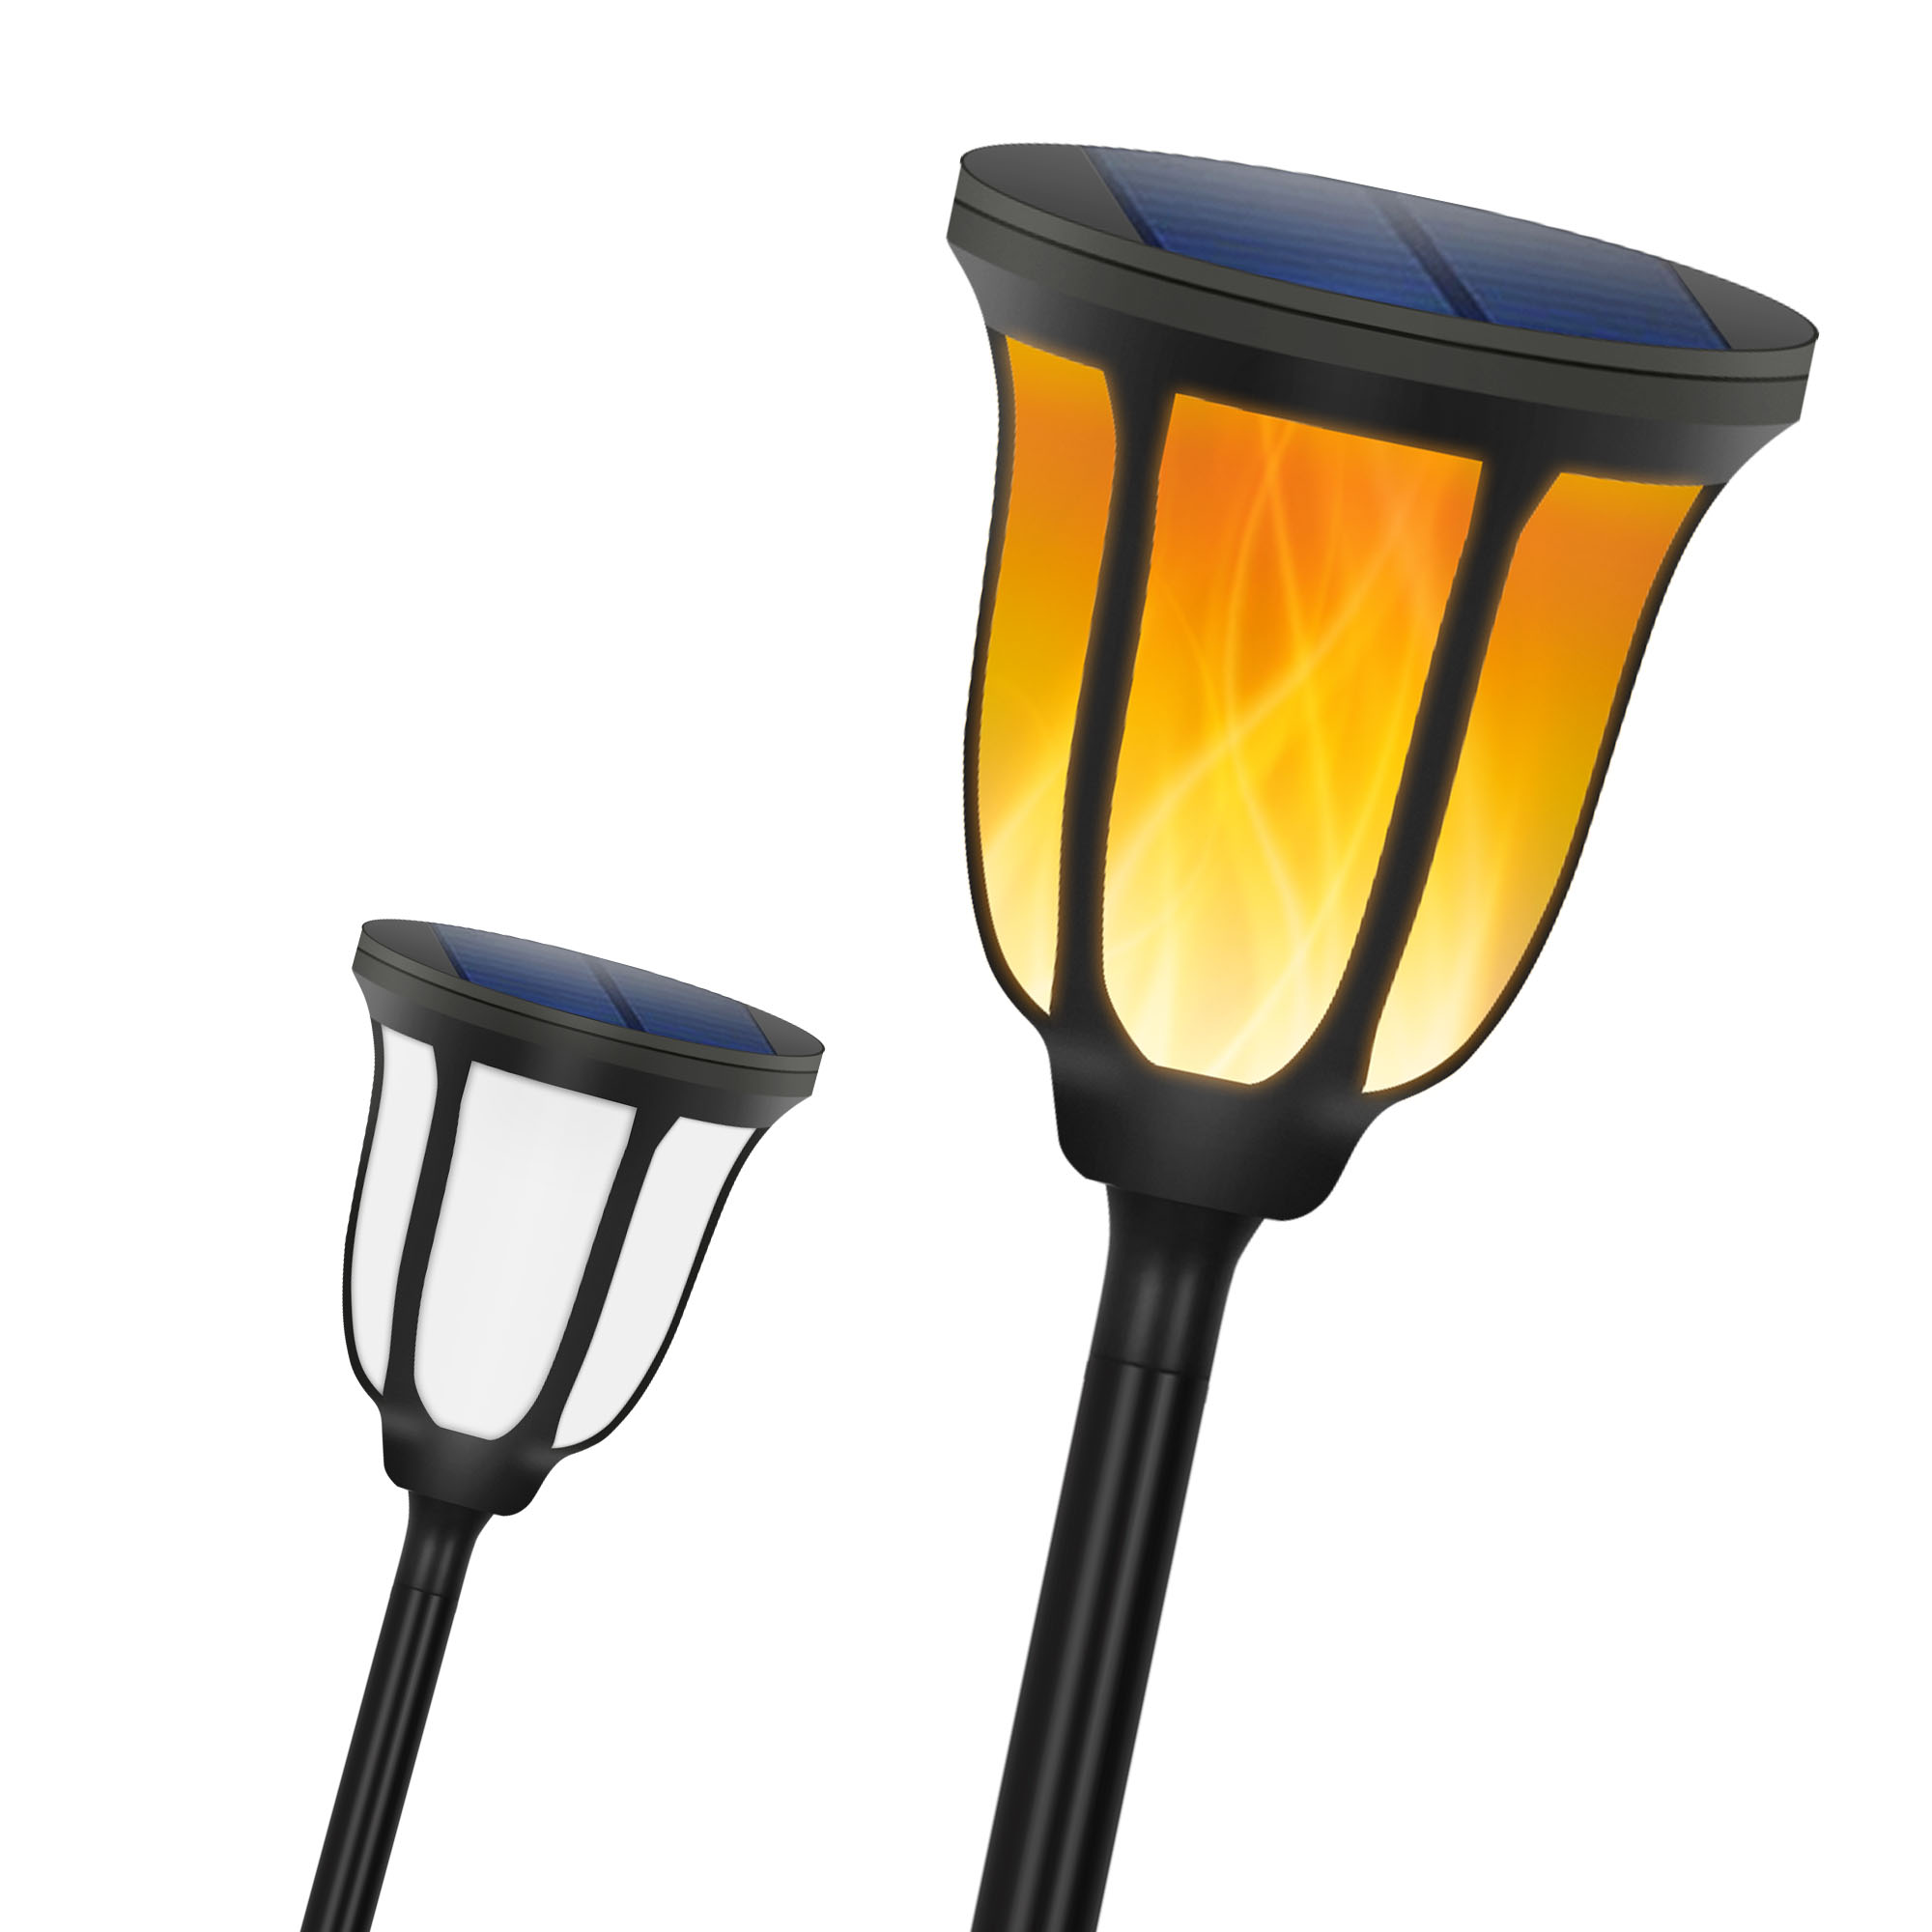 IP65 Solar Flame Lamp Waterproof LED Flickering Path Lighting Torch Light Spotlight Garden Decoration Landscape Light Lawn Lamp|Solar Lamps| |  - title=